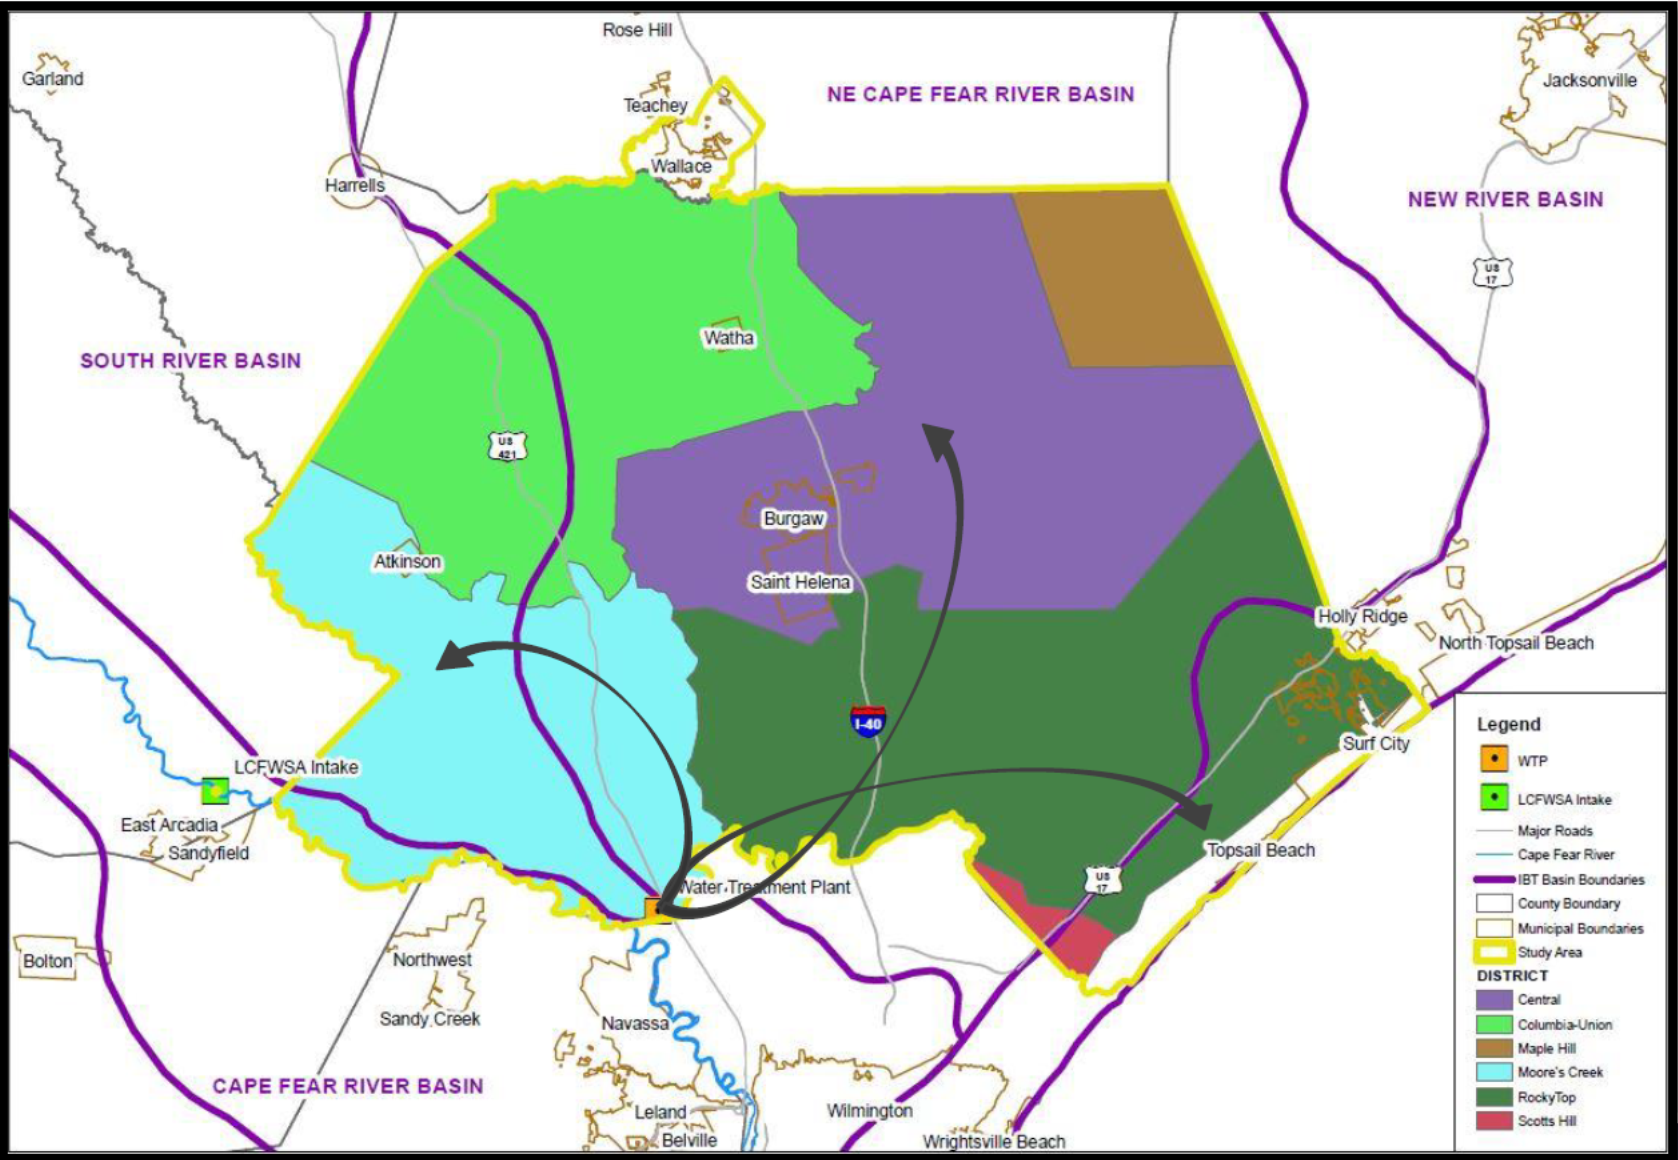 Pender County IBT map